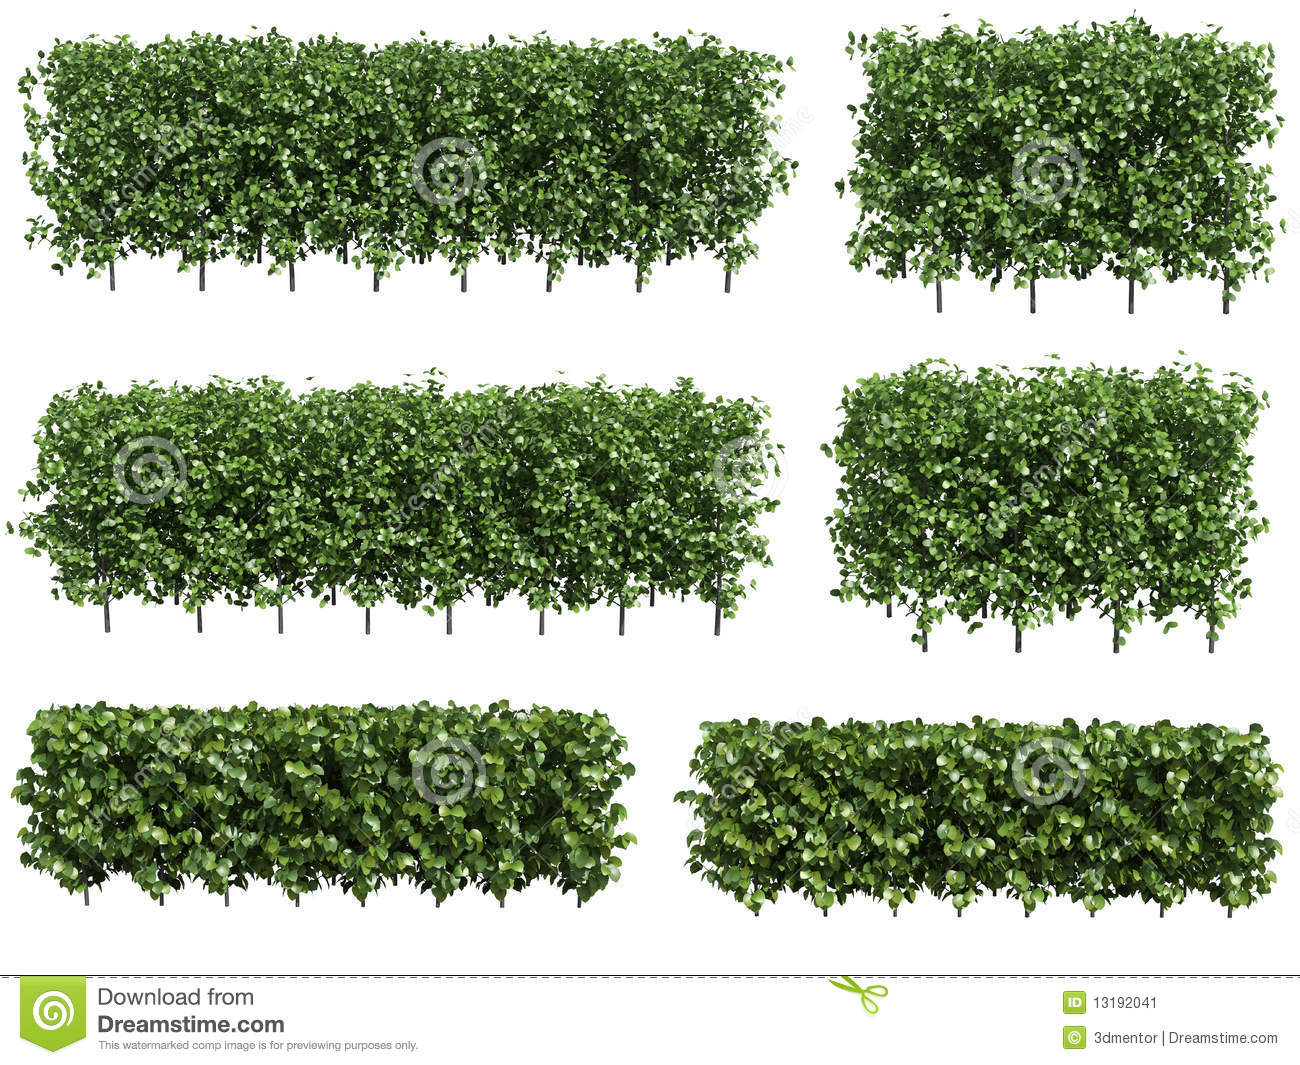 Hedges clipart green Illustrations Hedge collection Stock Hedge